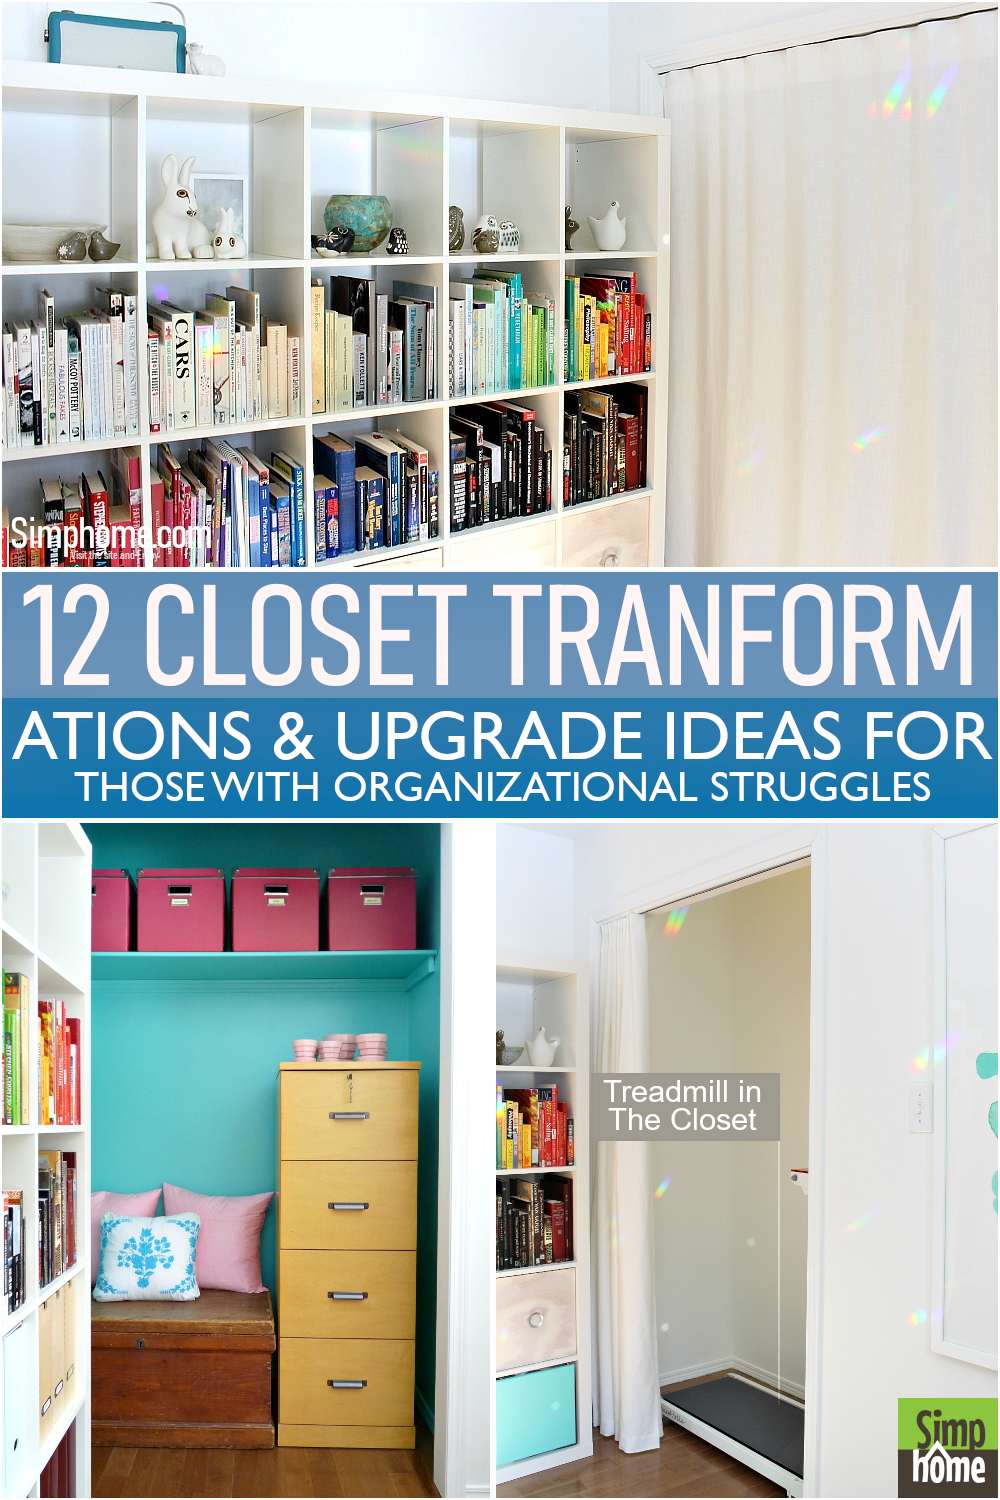 This is 12 Closet transformation poster